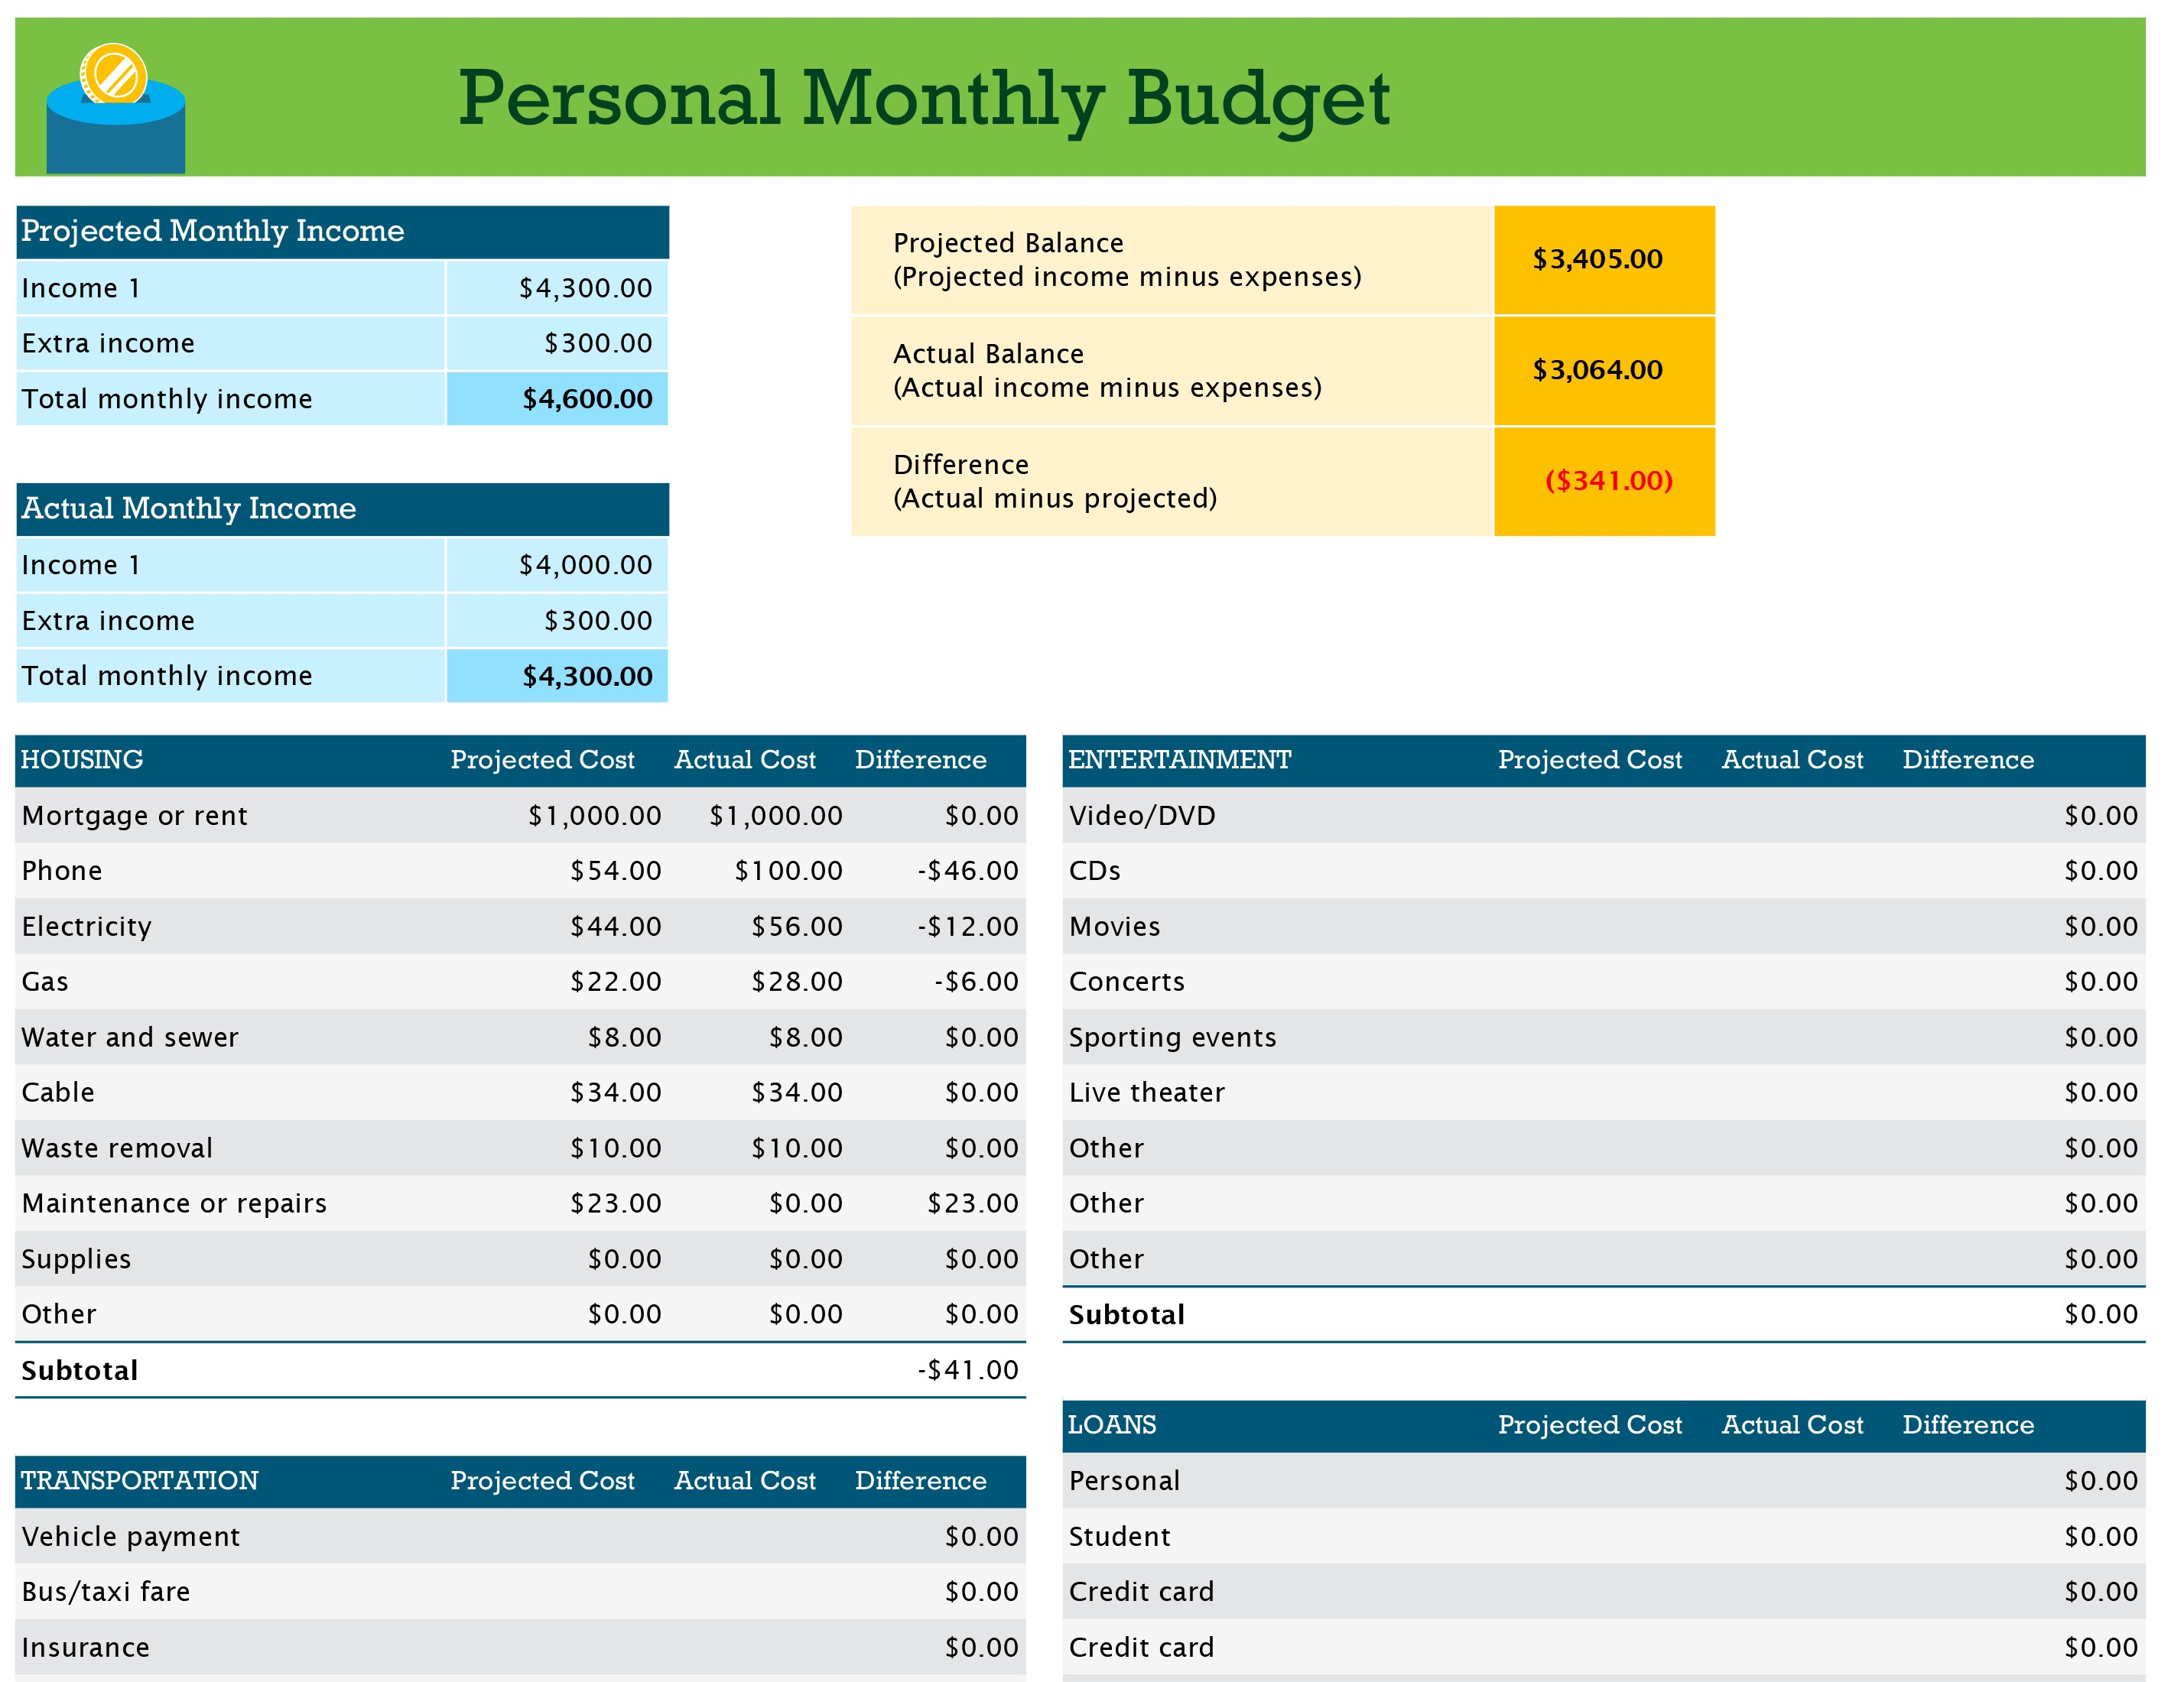 College Budget Template for Excel 2010 & 2013